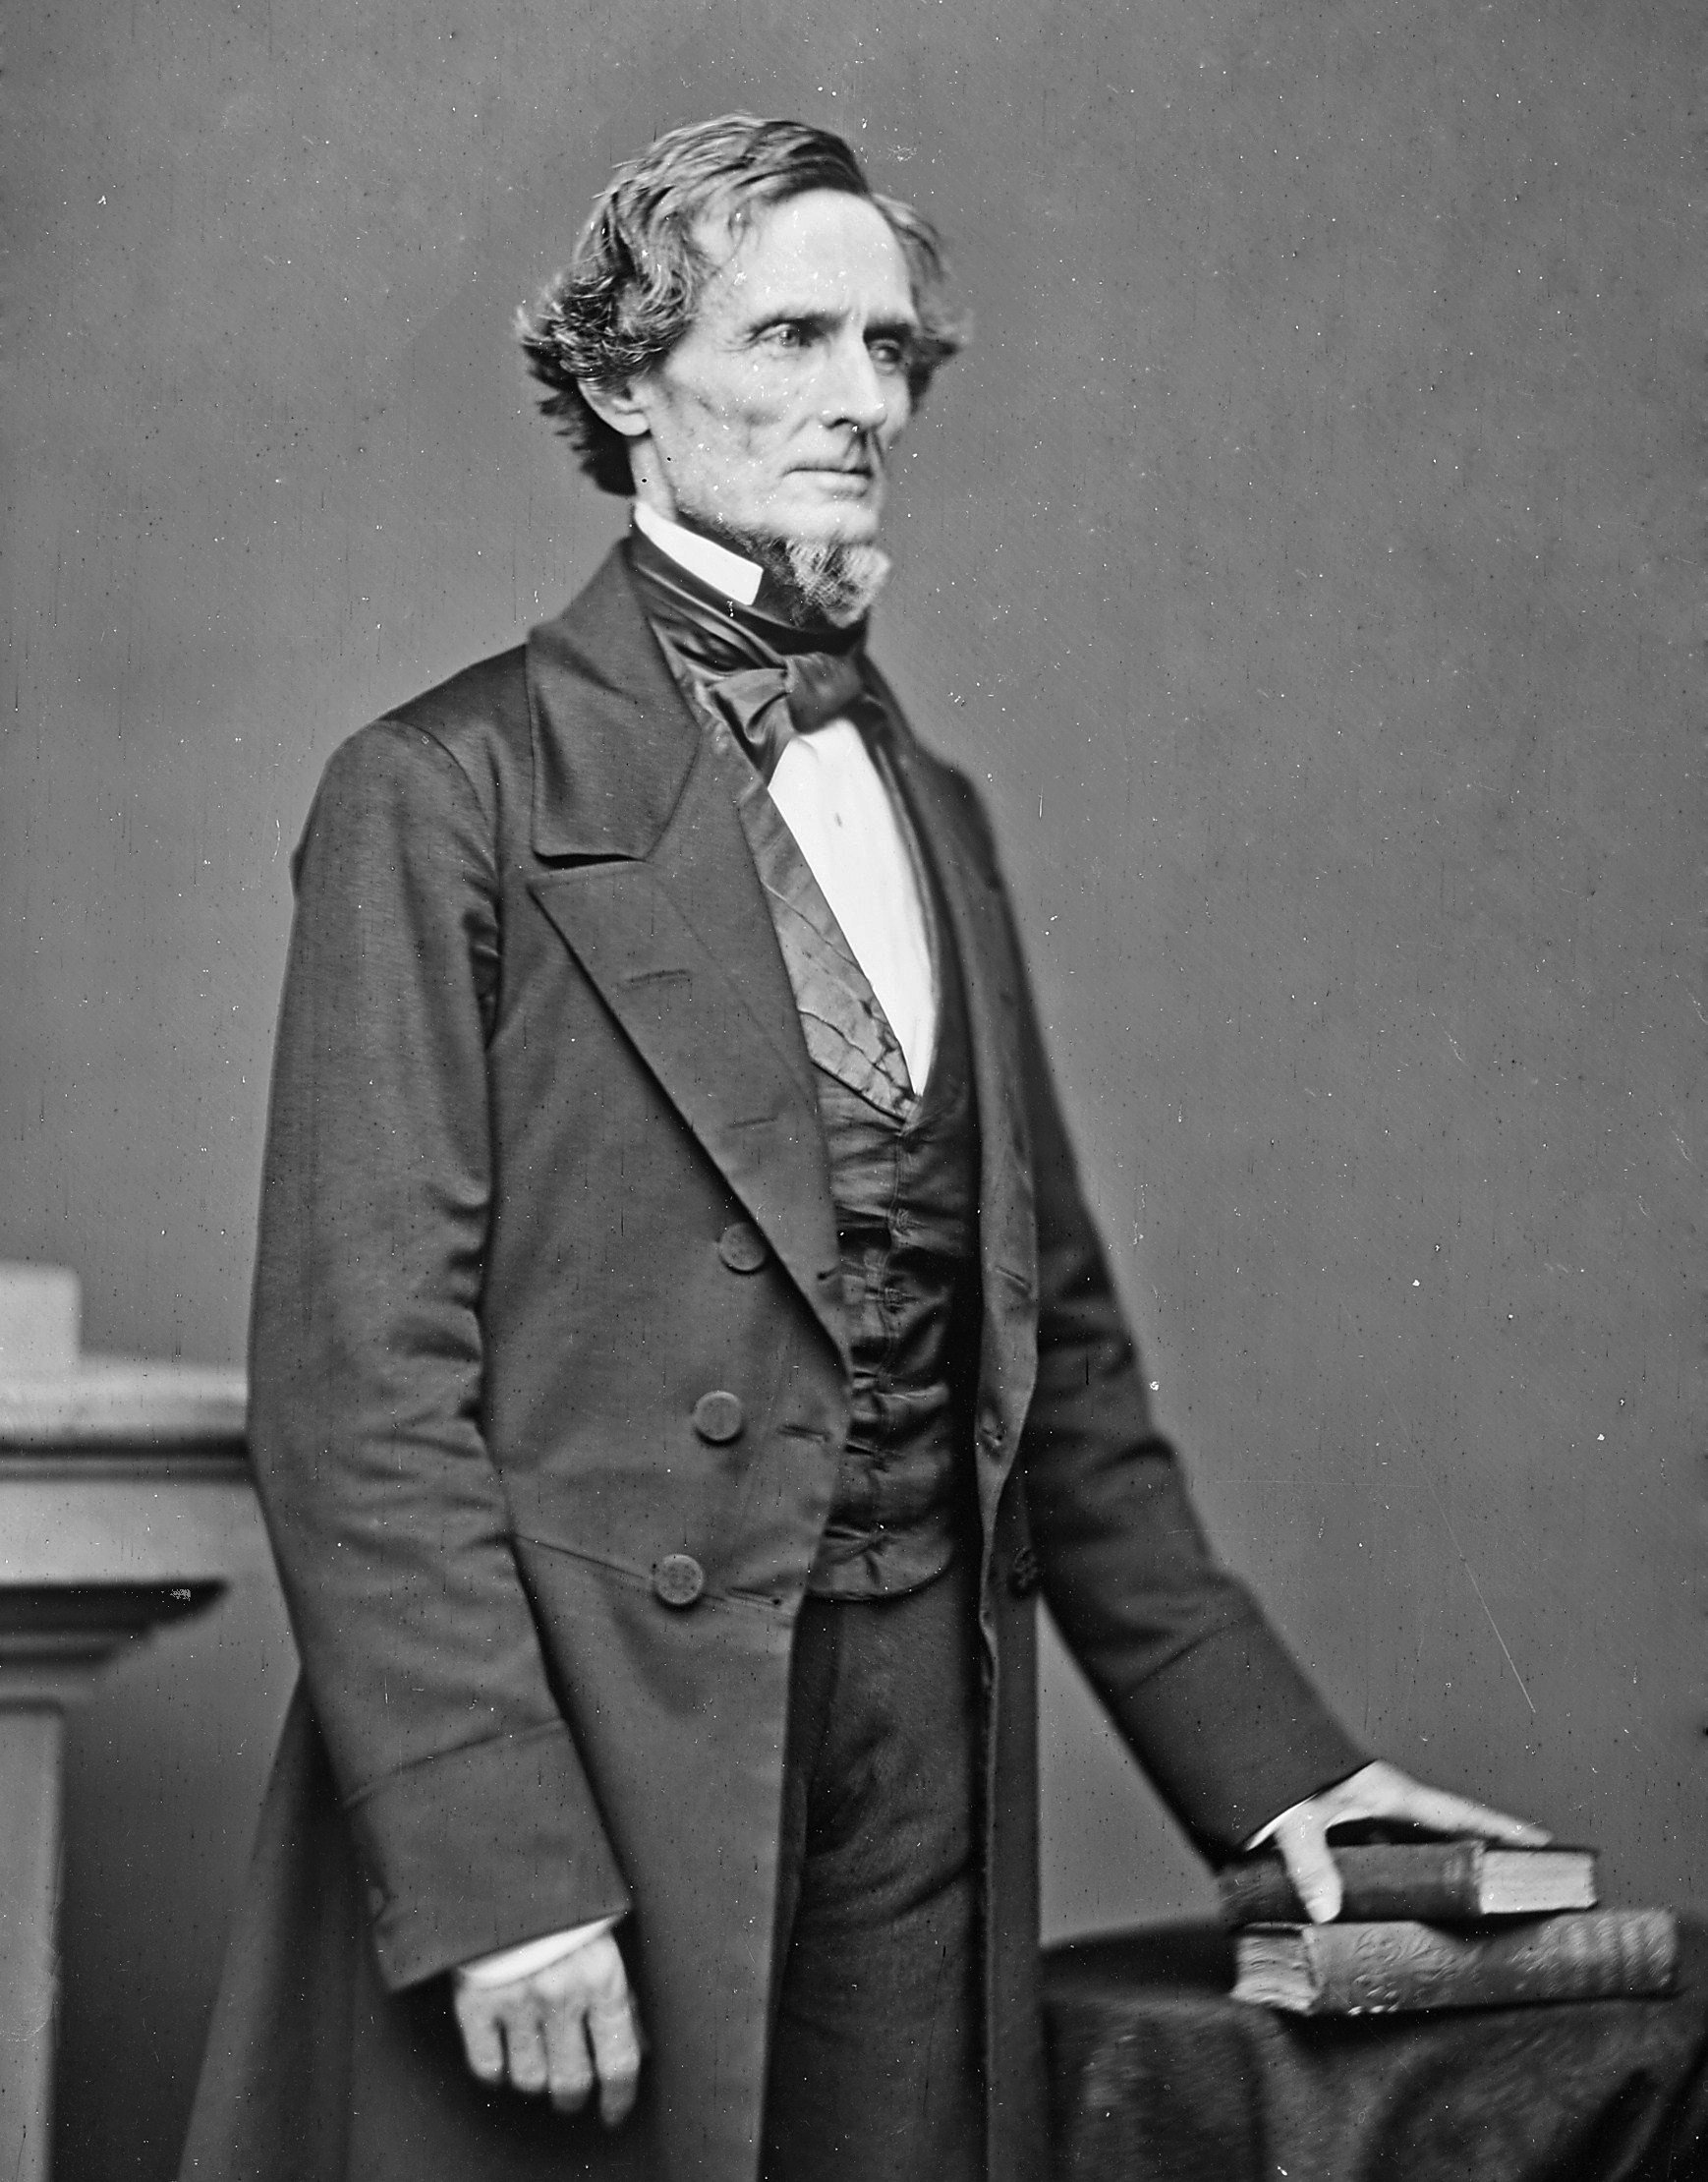 Jefferson Davis, President of the Confederate States of America.